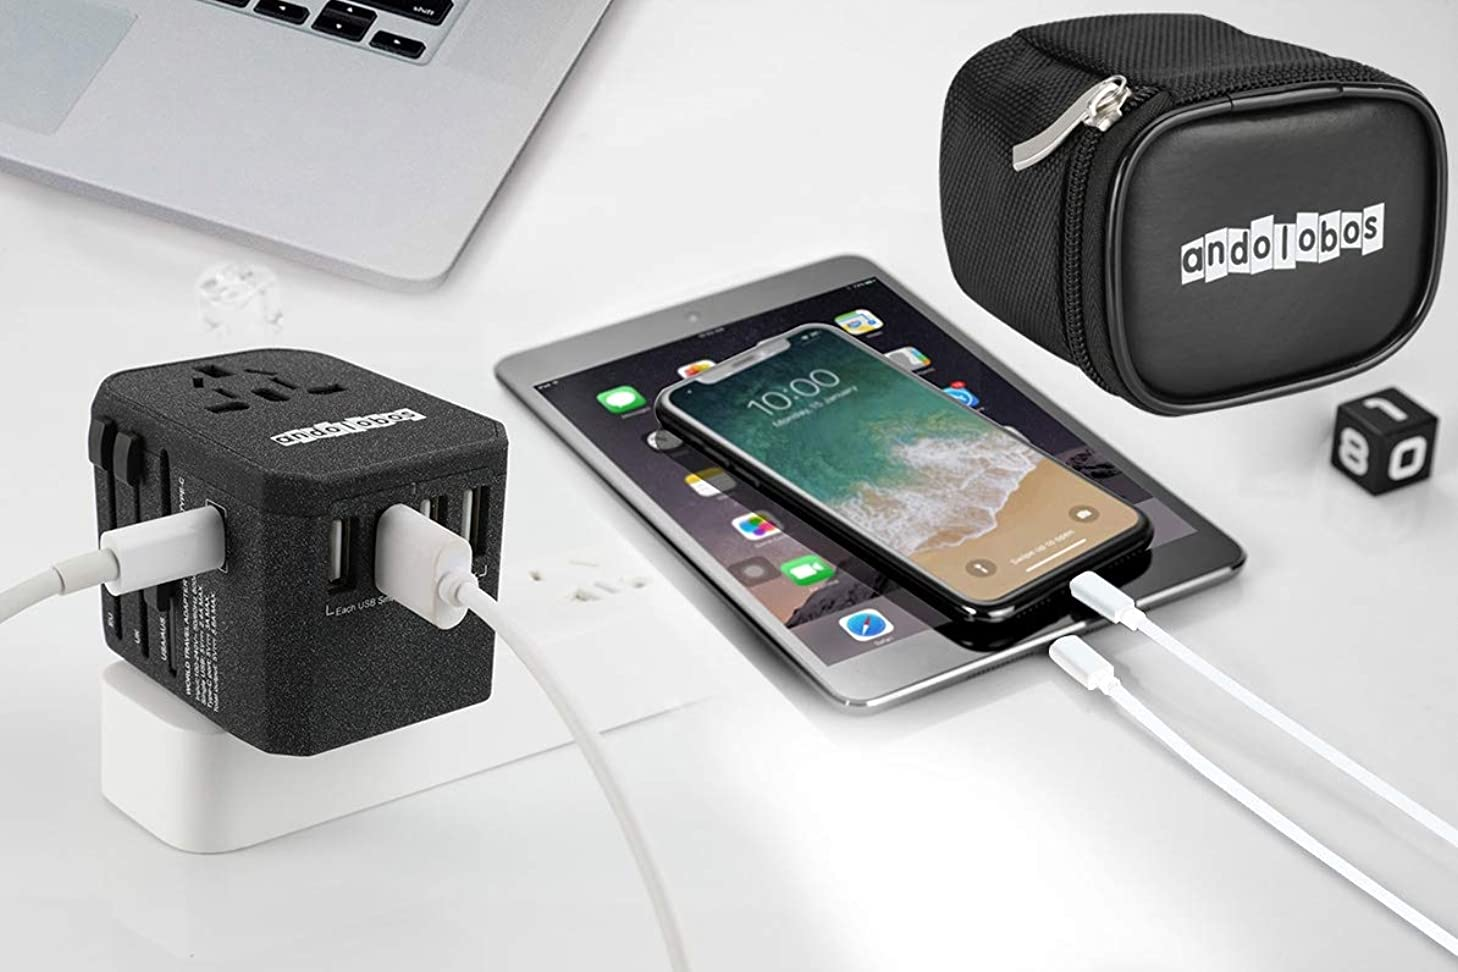 ANDOLOBOS Travel Adapter-All in One Worldwide International 4 USB Type C Charger AC Plug Adapter with 5.6A Smart Power 3.0A USB Type-C For USA EU UK AUS Asia Cell Phone Tablet Laptop